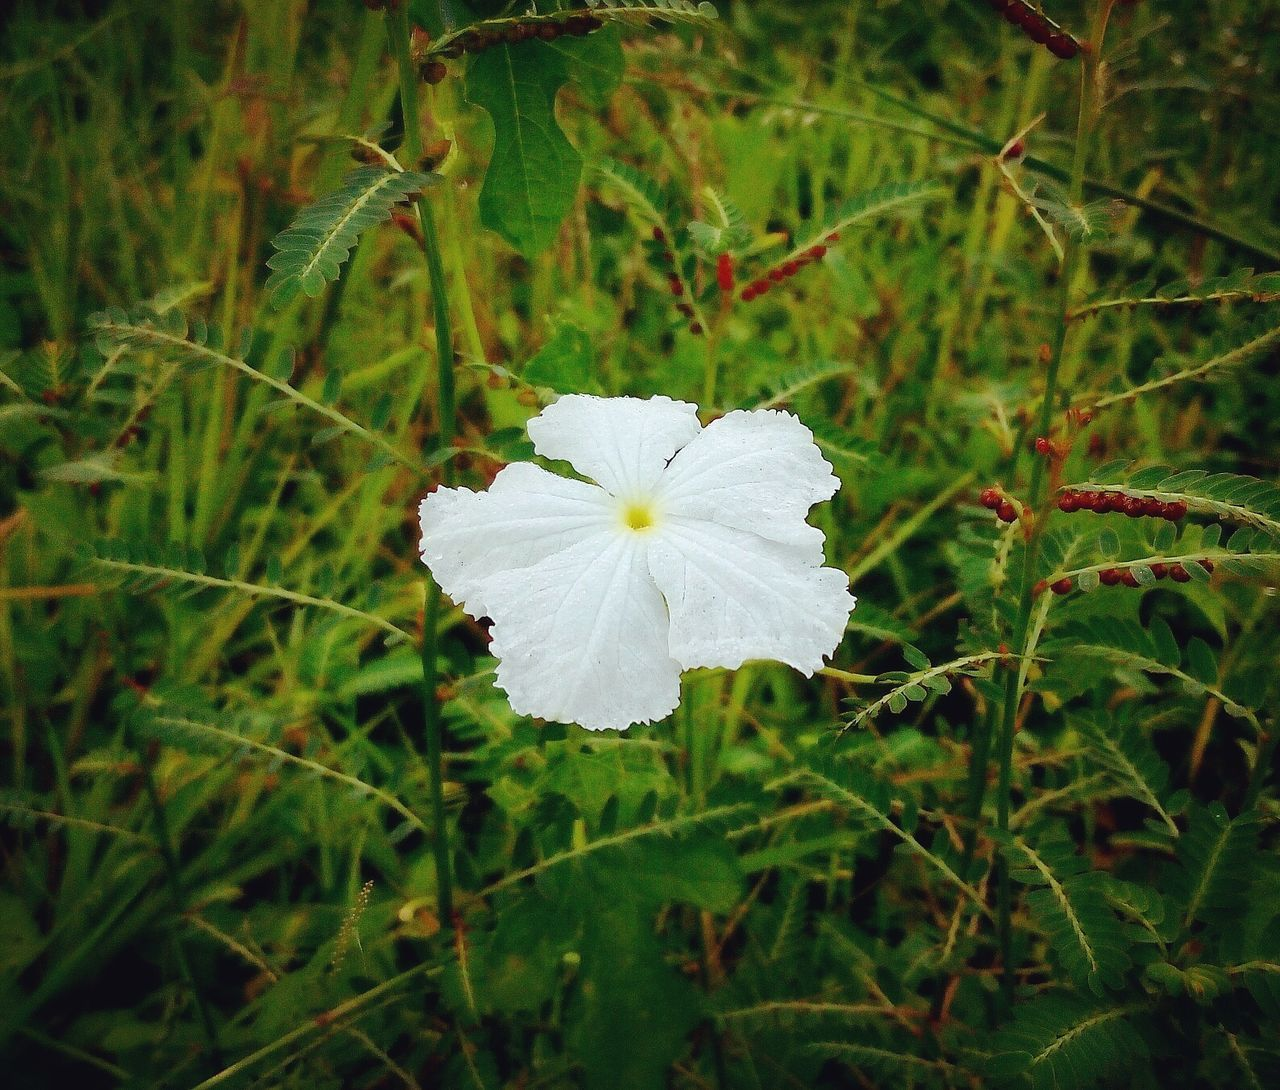 flower, white color, growth, flower head, petal, fragility, nature, beauty in nature, plant, day, blooming, no people, freshness, close-up, outdoors, periwinkle